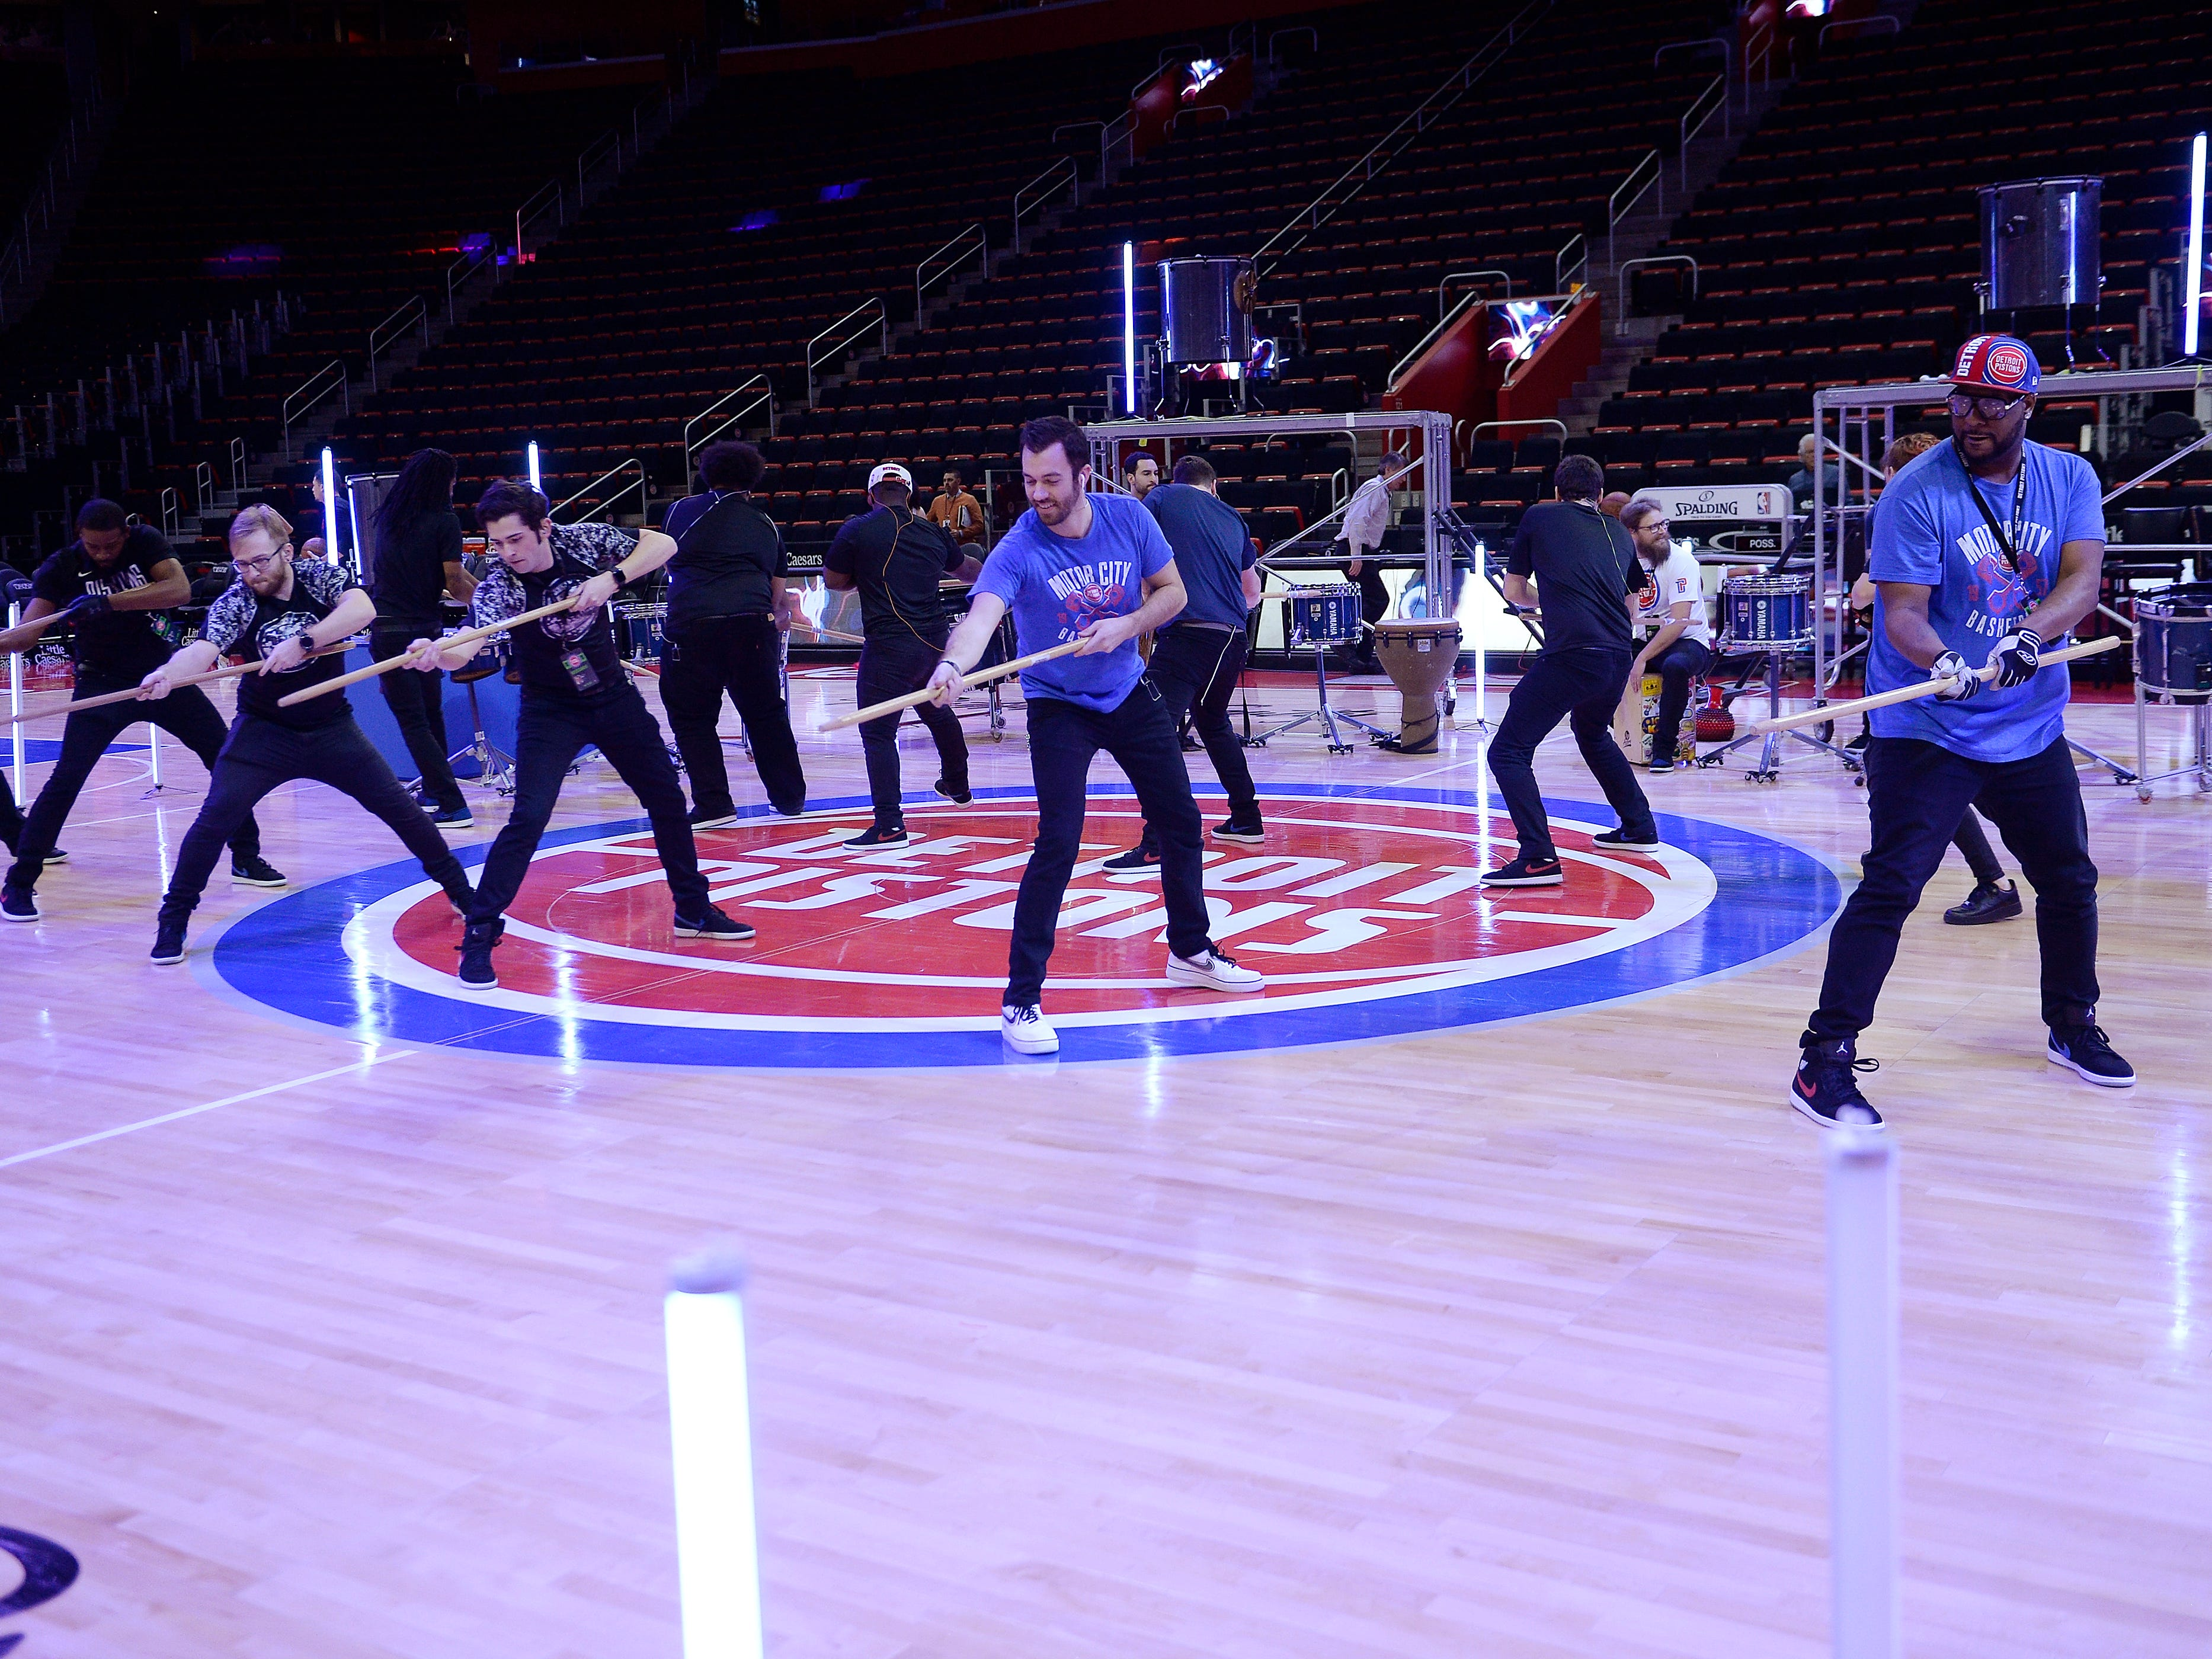 The Pistons Drumline team practice their routine before the game.